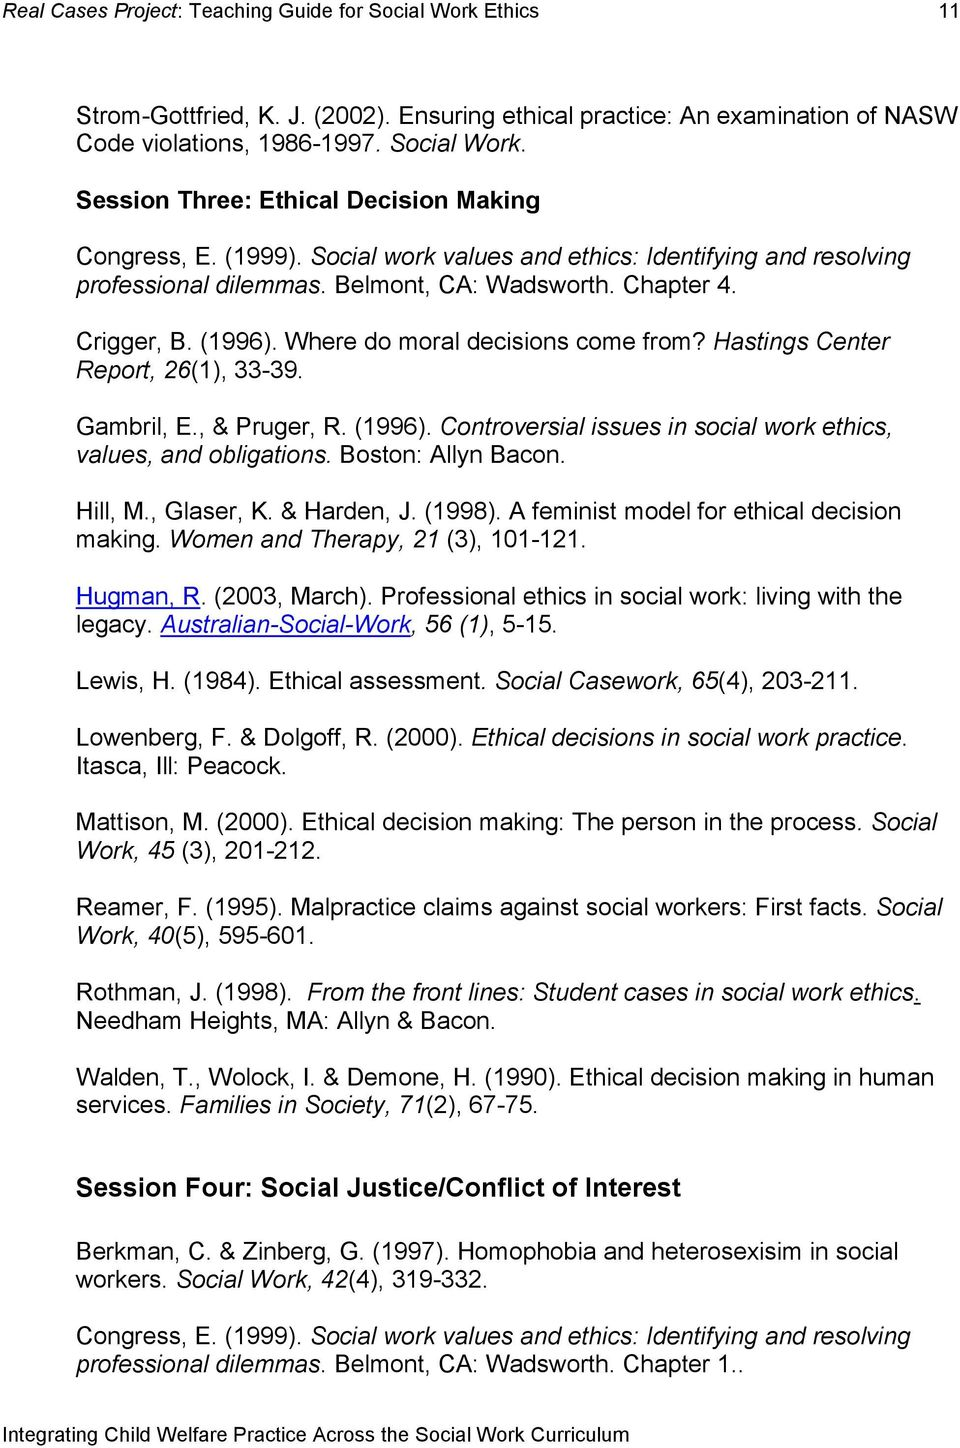 Hastings Center Report, 26(1), 33-39. Gambril, E., & Pruger, R. (1996). Controversial issues in social work ethics, values, and obligations. Boston: Allyn Bacon. Hill, M., Glaser, K. & Harden, J.